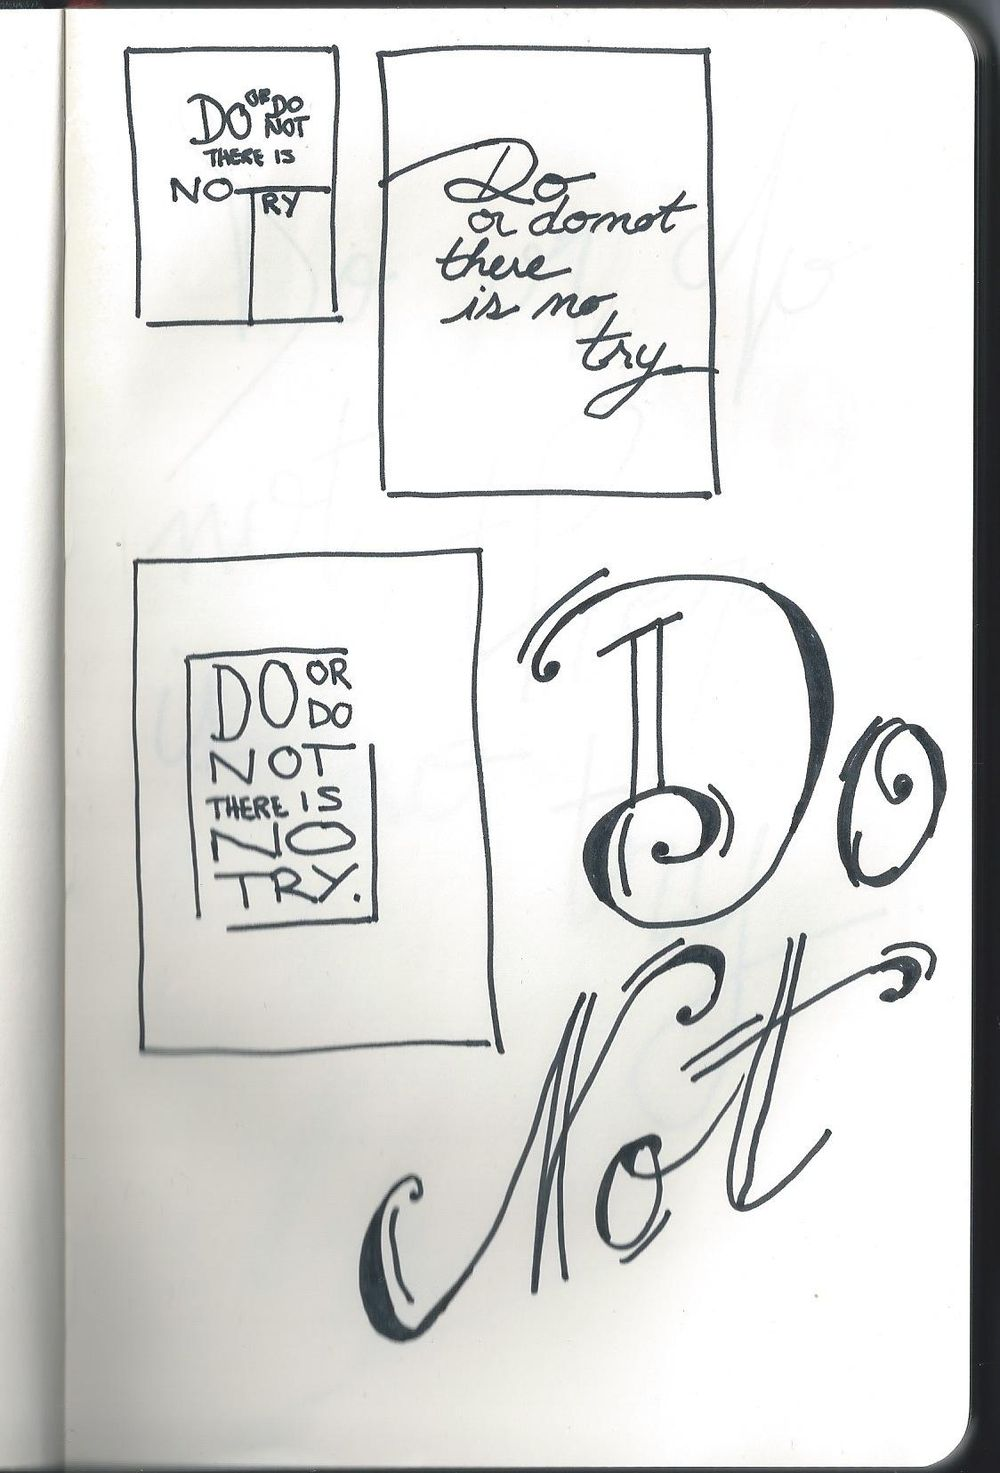 Do or do not, there is no try. - image 9 - student project